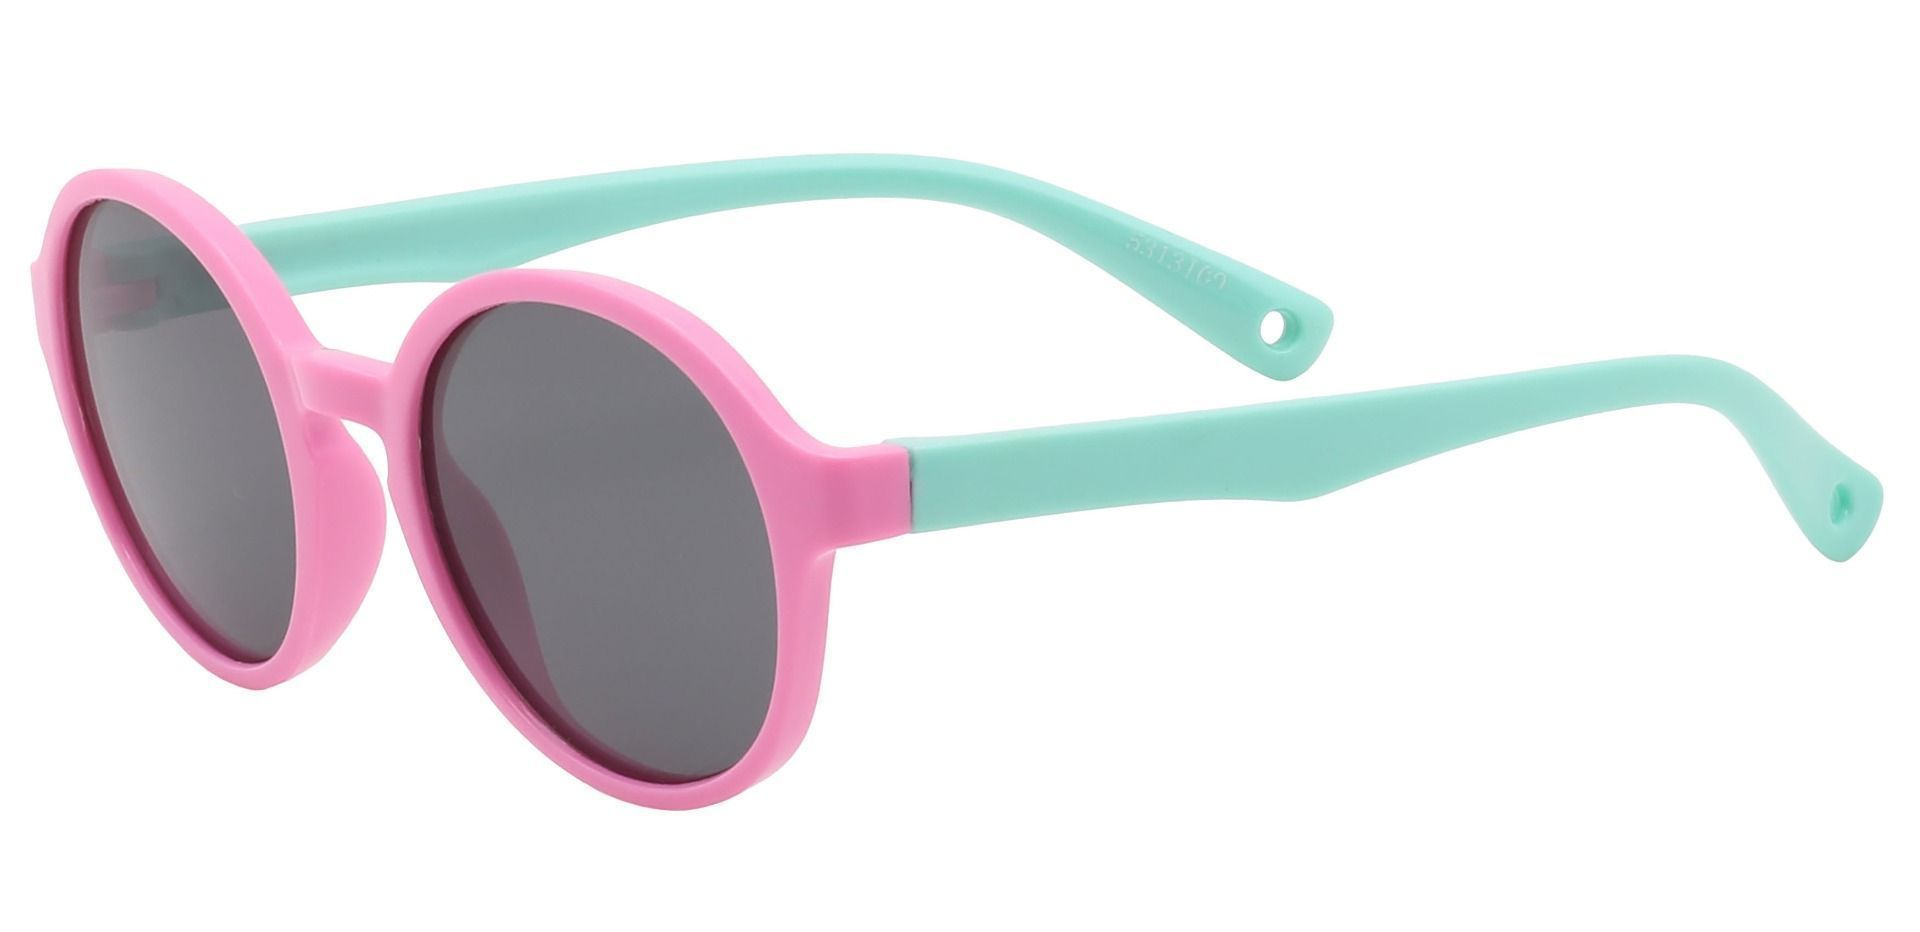 Cotton Candy Round Single Vision Sunglasses - Pink Frame With Gray Lenses